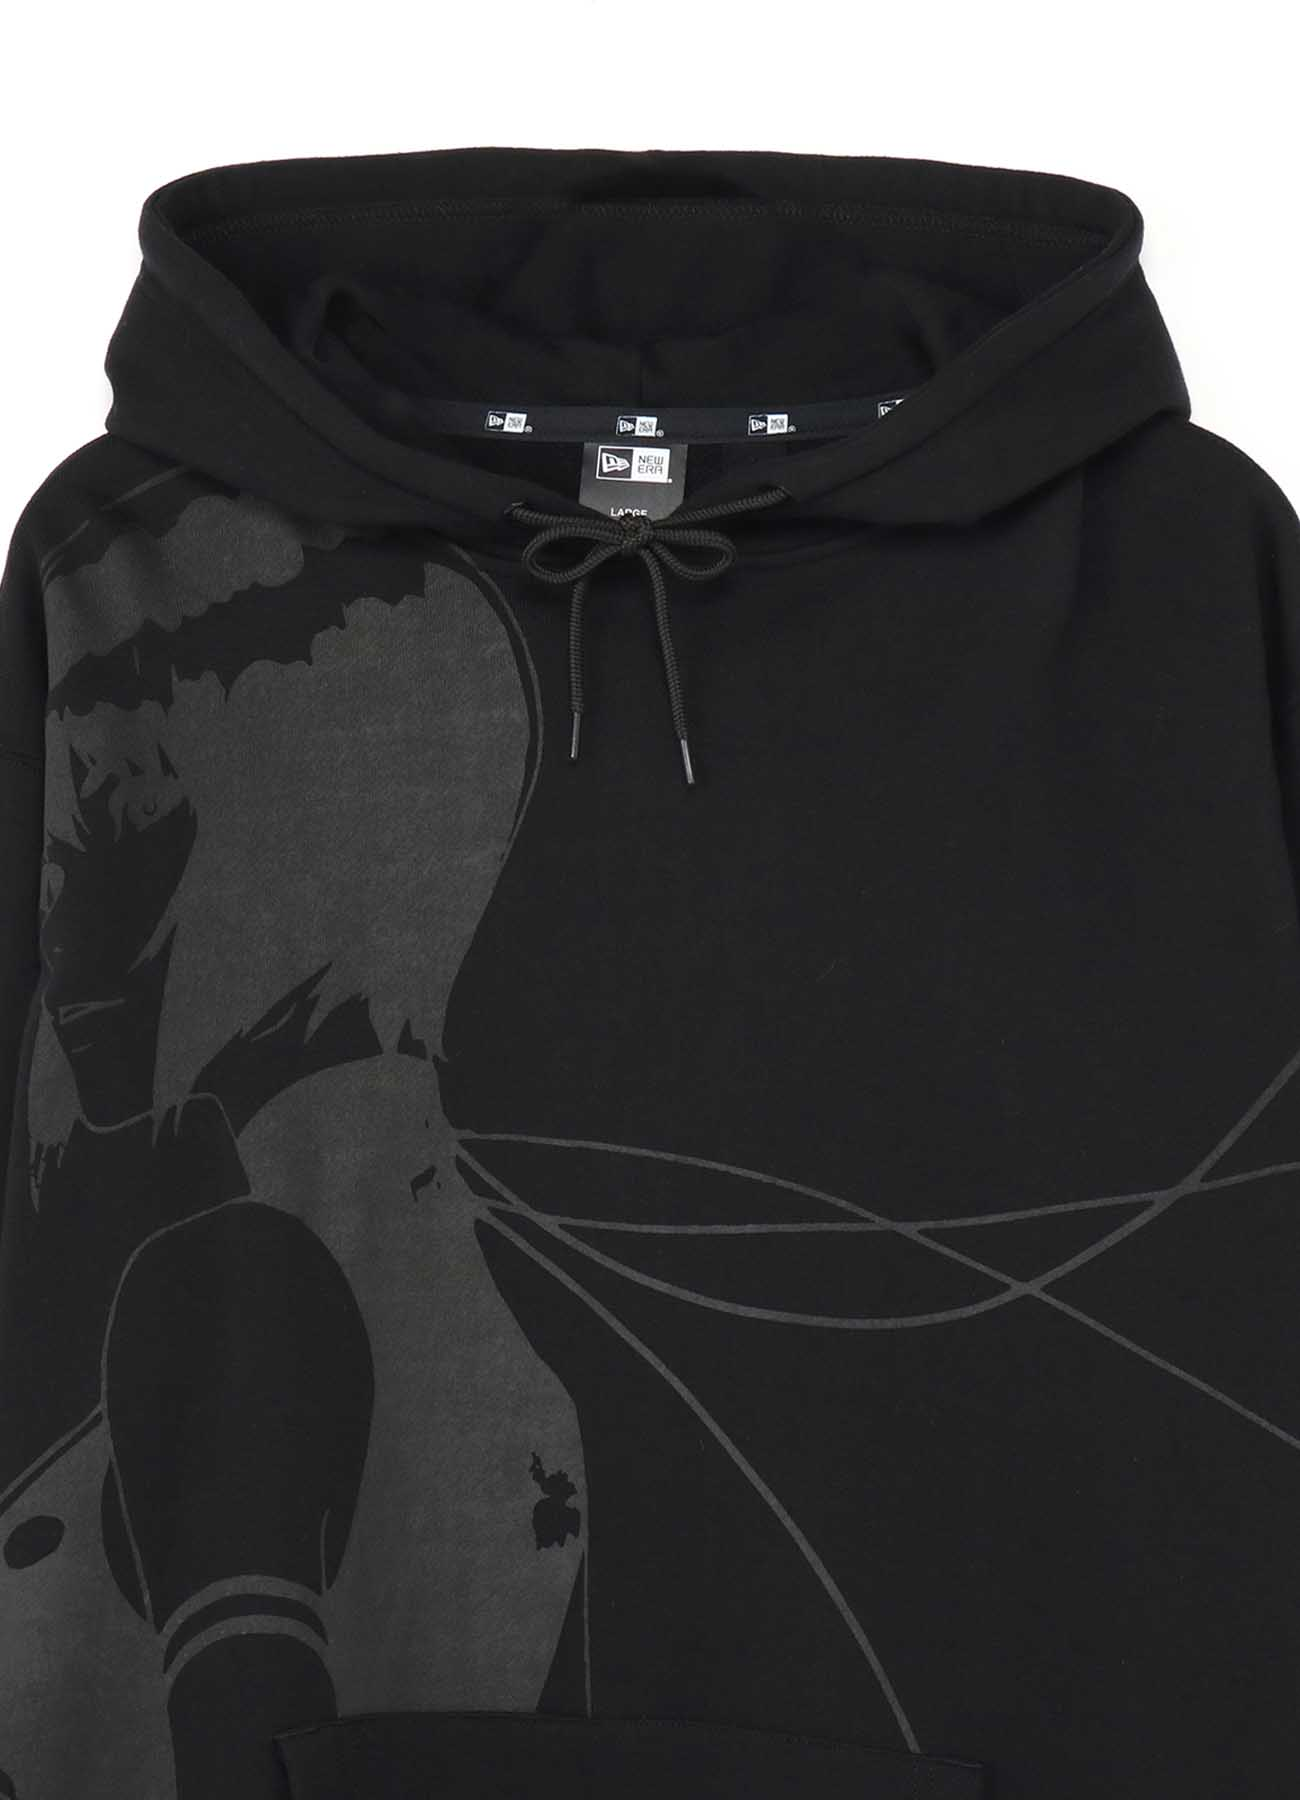 Ground Y×NEW ERA×GHOST IN THE SHELL Pull Over Hoodie